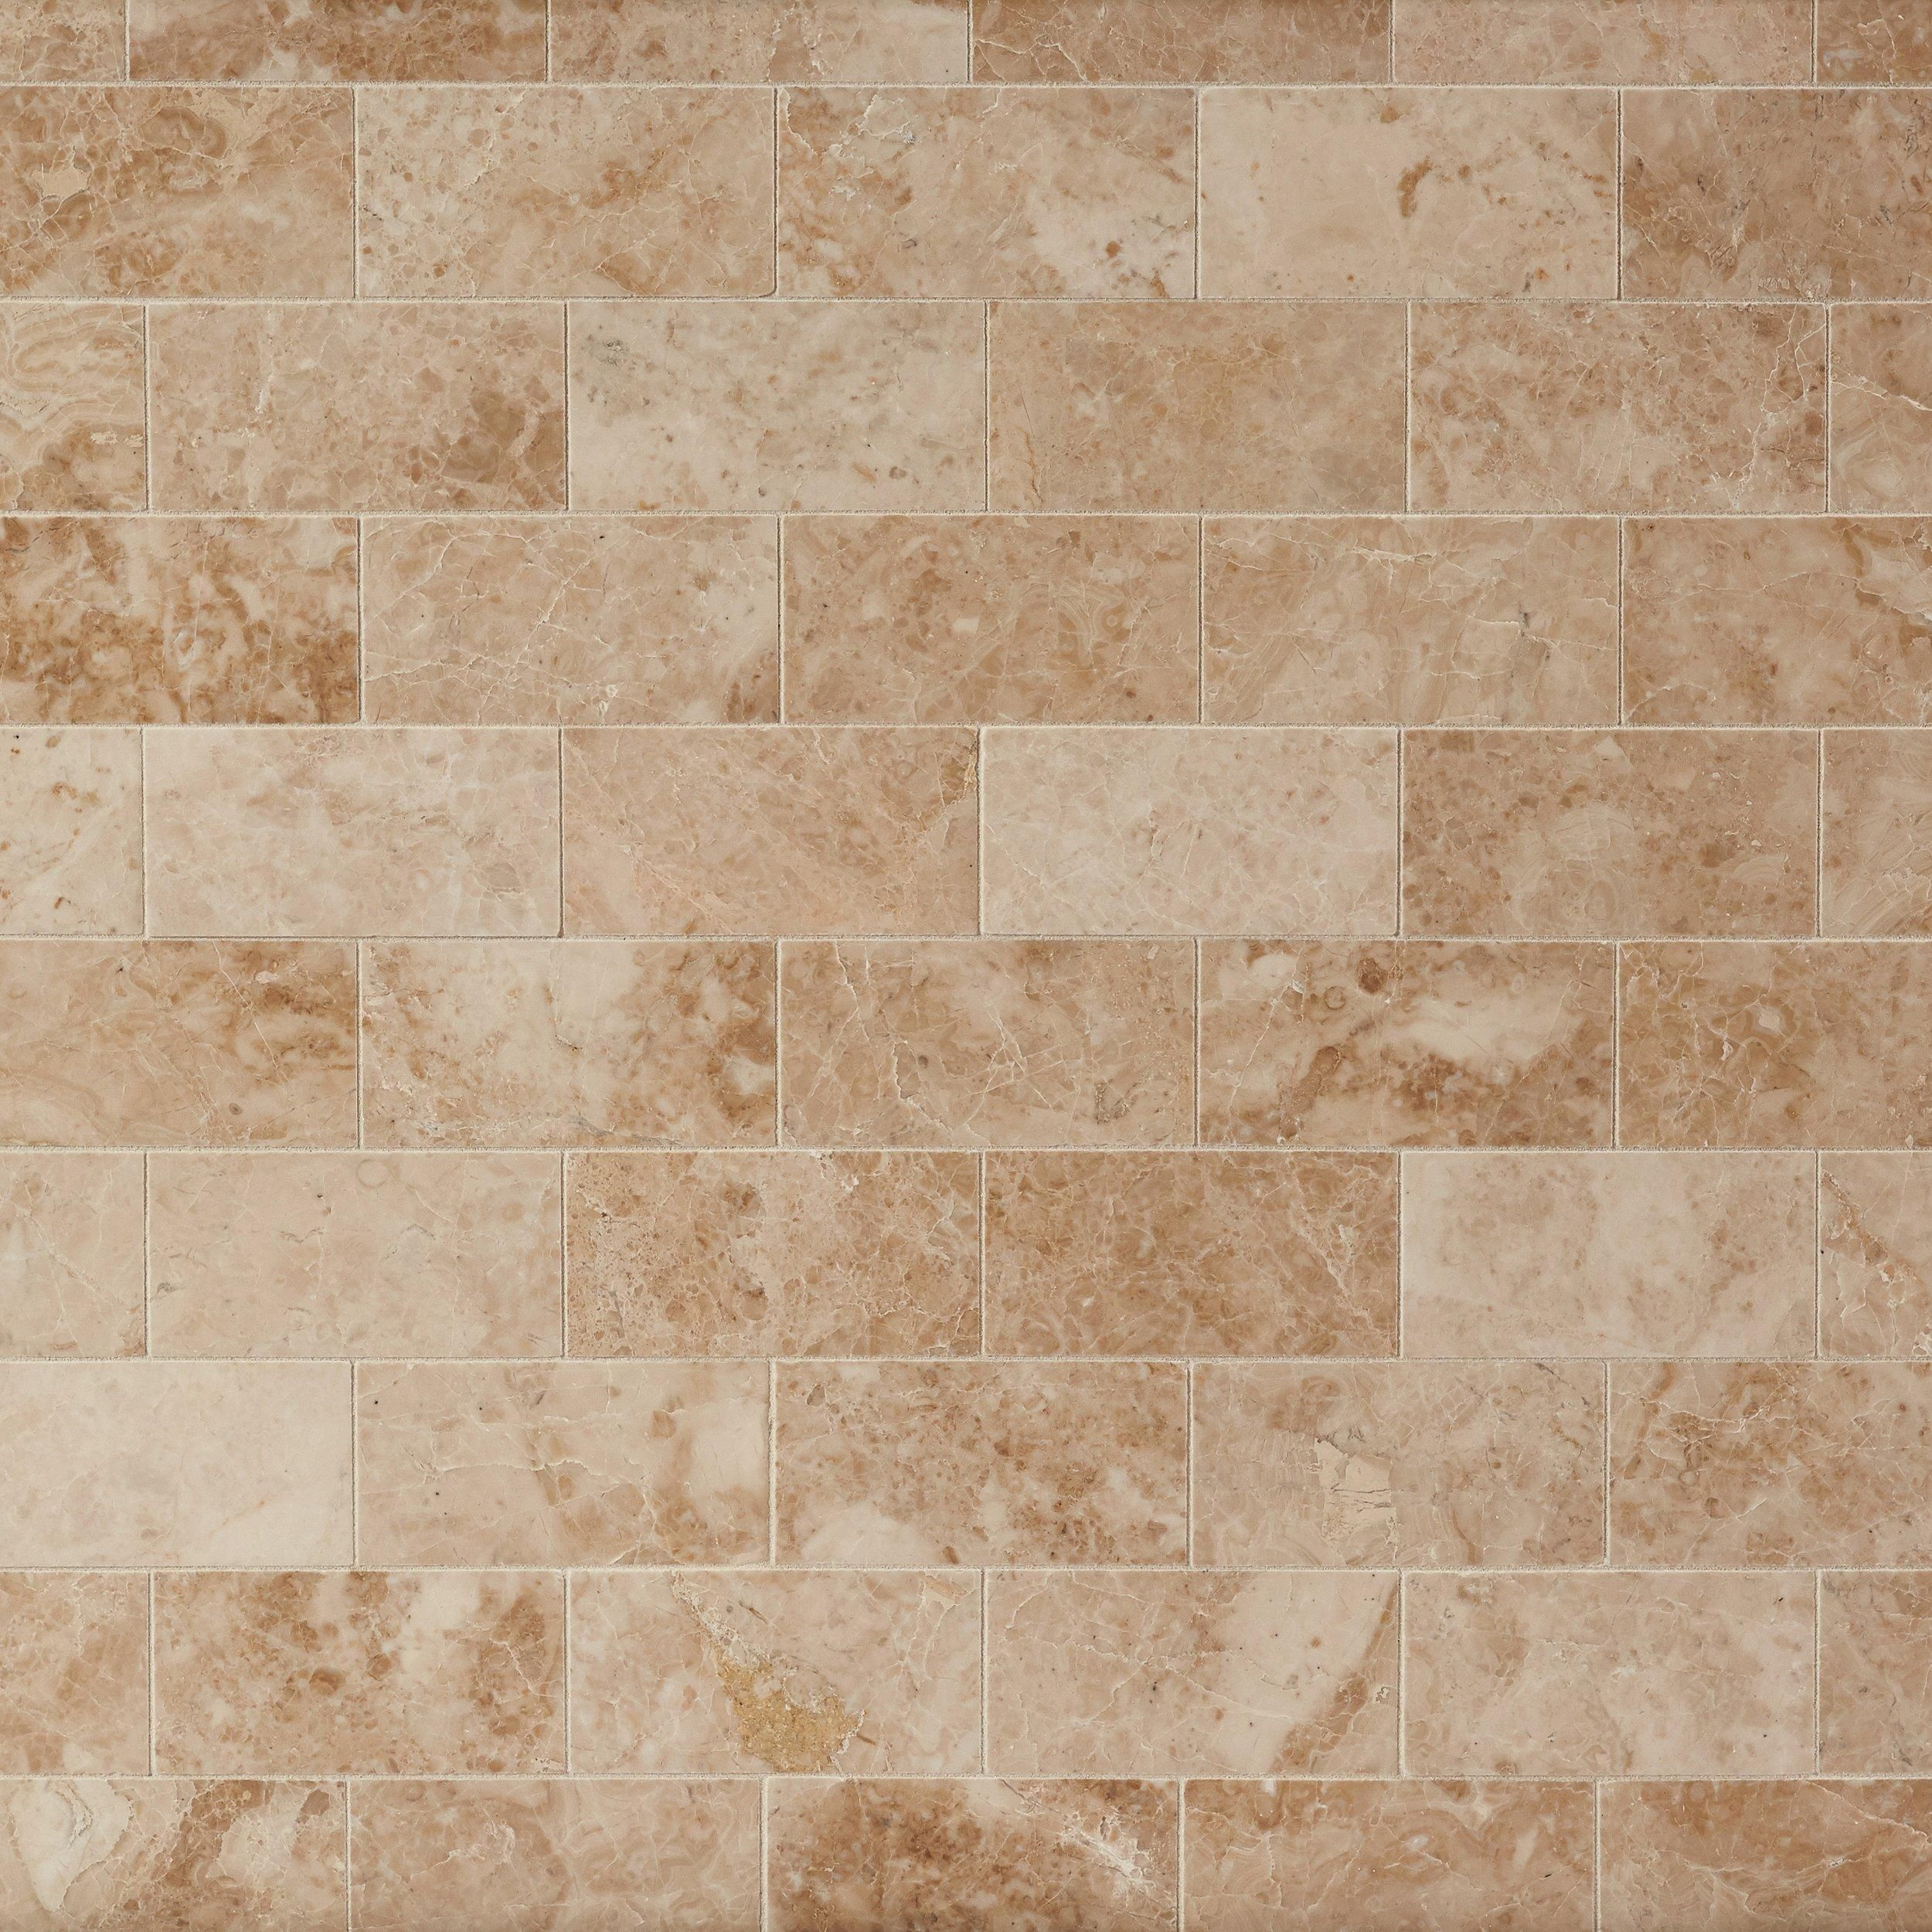 Cuccino Beige Polished Marble Tile Tiles